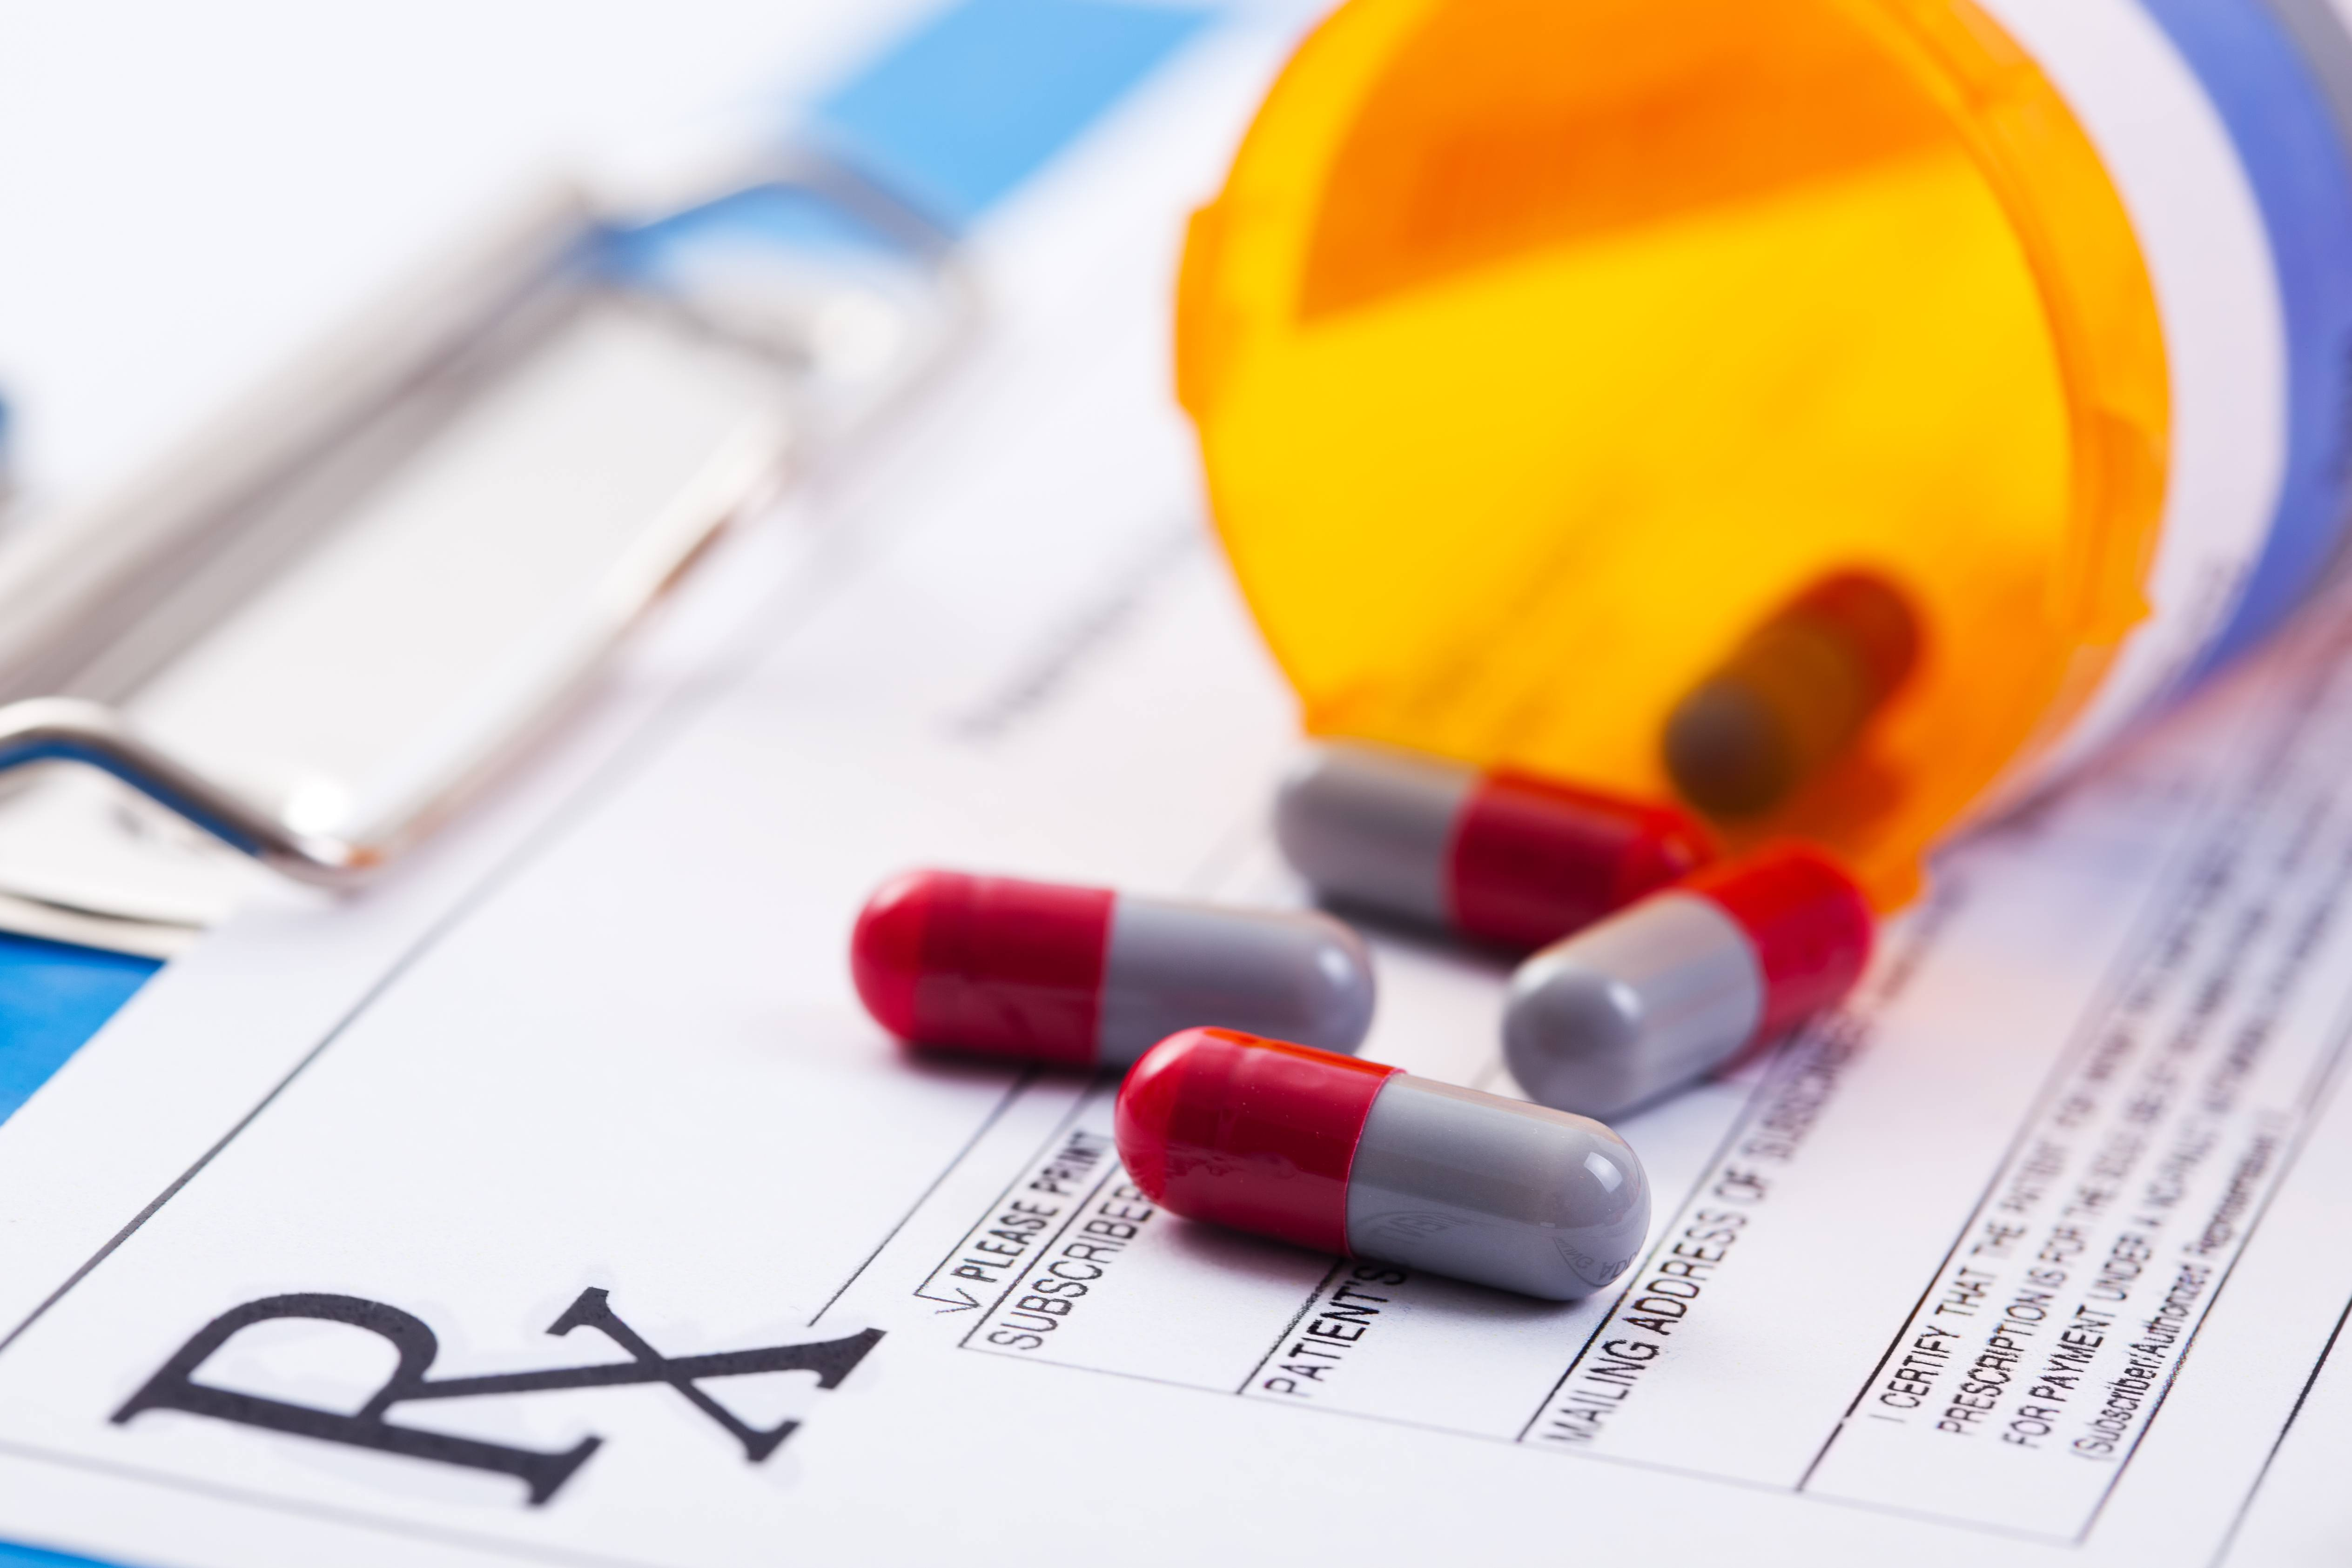 sehbp active njea member prescription benefits are transitioning to